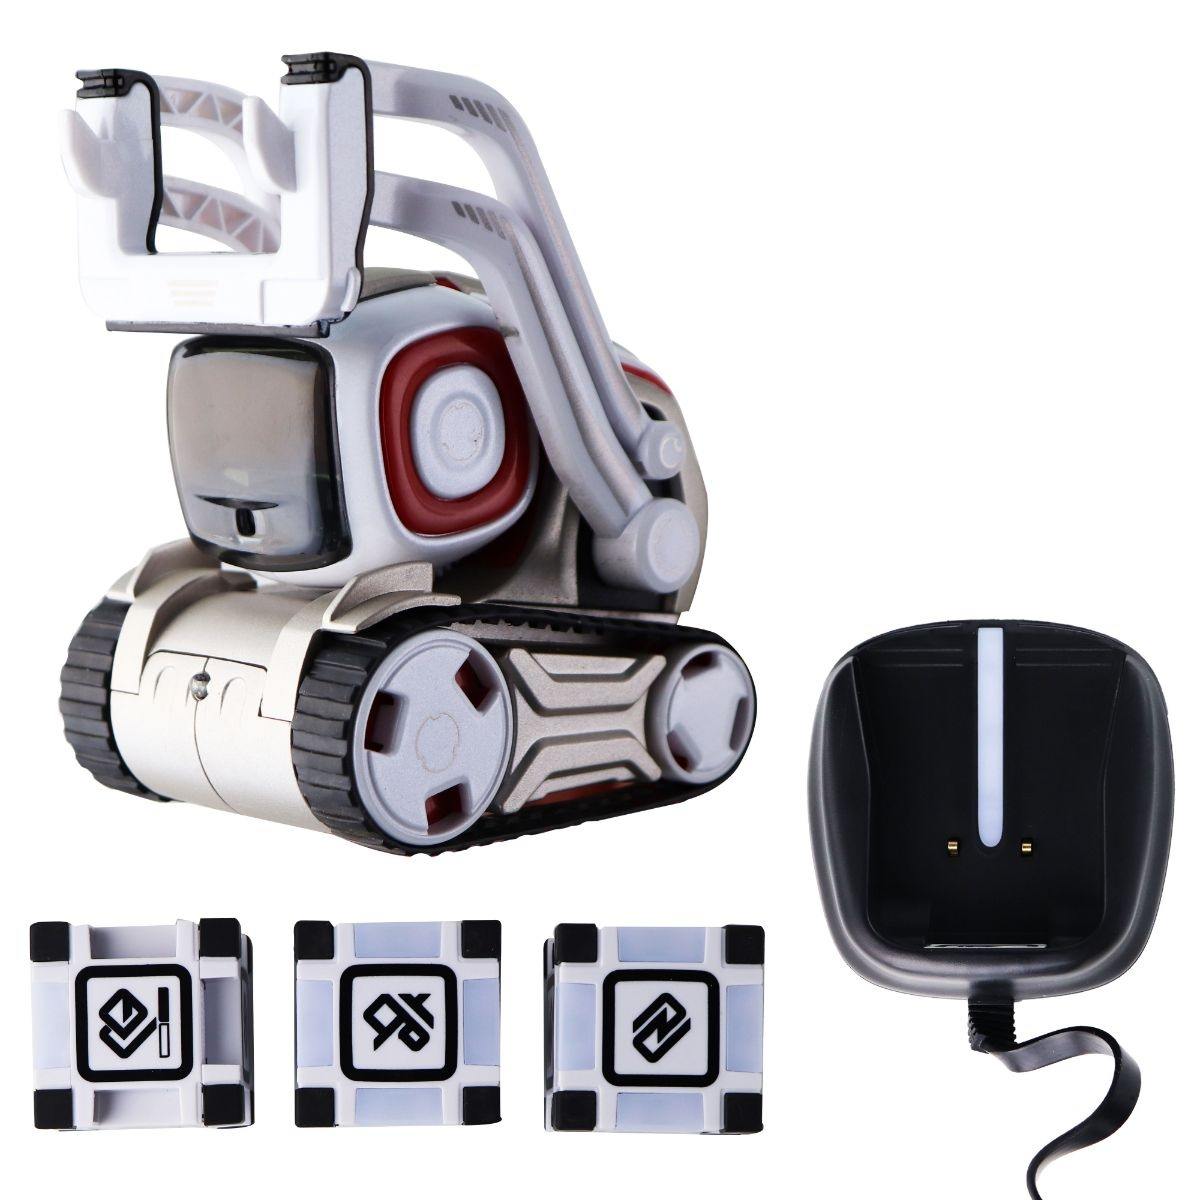 Anki Cozmo Robot Toy with 3 Power Cubes and AC Adapter - White / Silver / Red